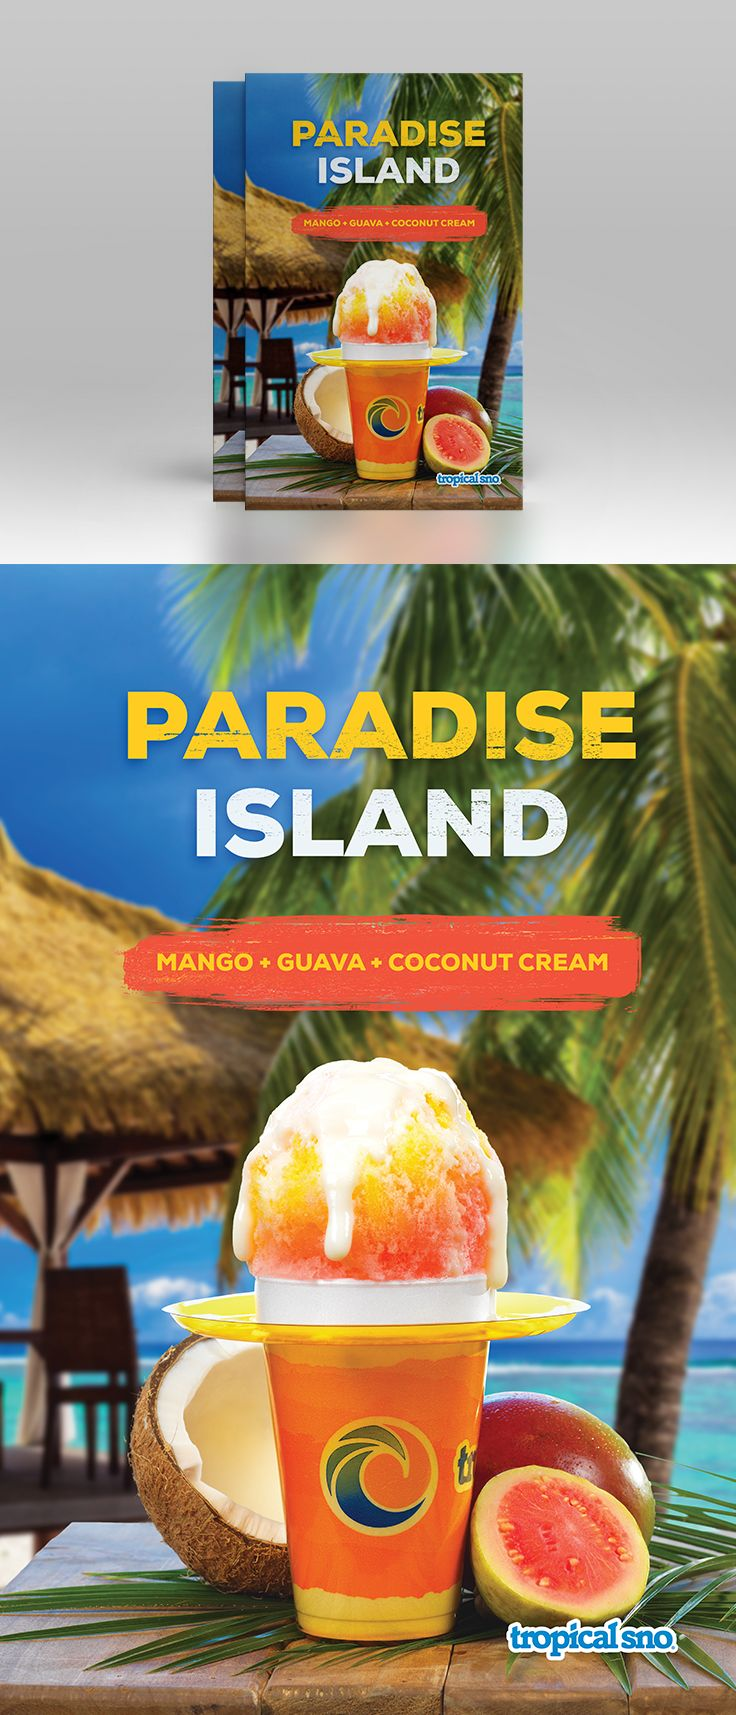 Paradise island poster for Tropical Sno #posterdesign #branding #advertising #marketing #tropicalsno #shavedice #packagedesign #epicmarketing #poster